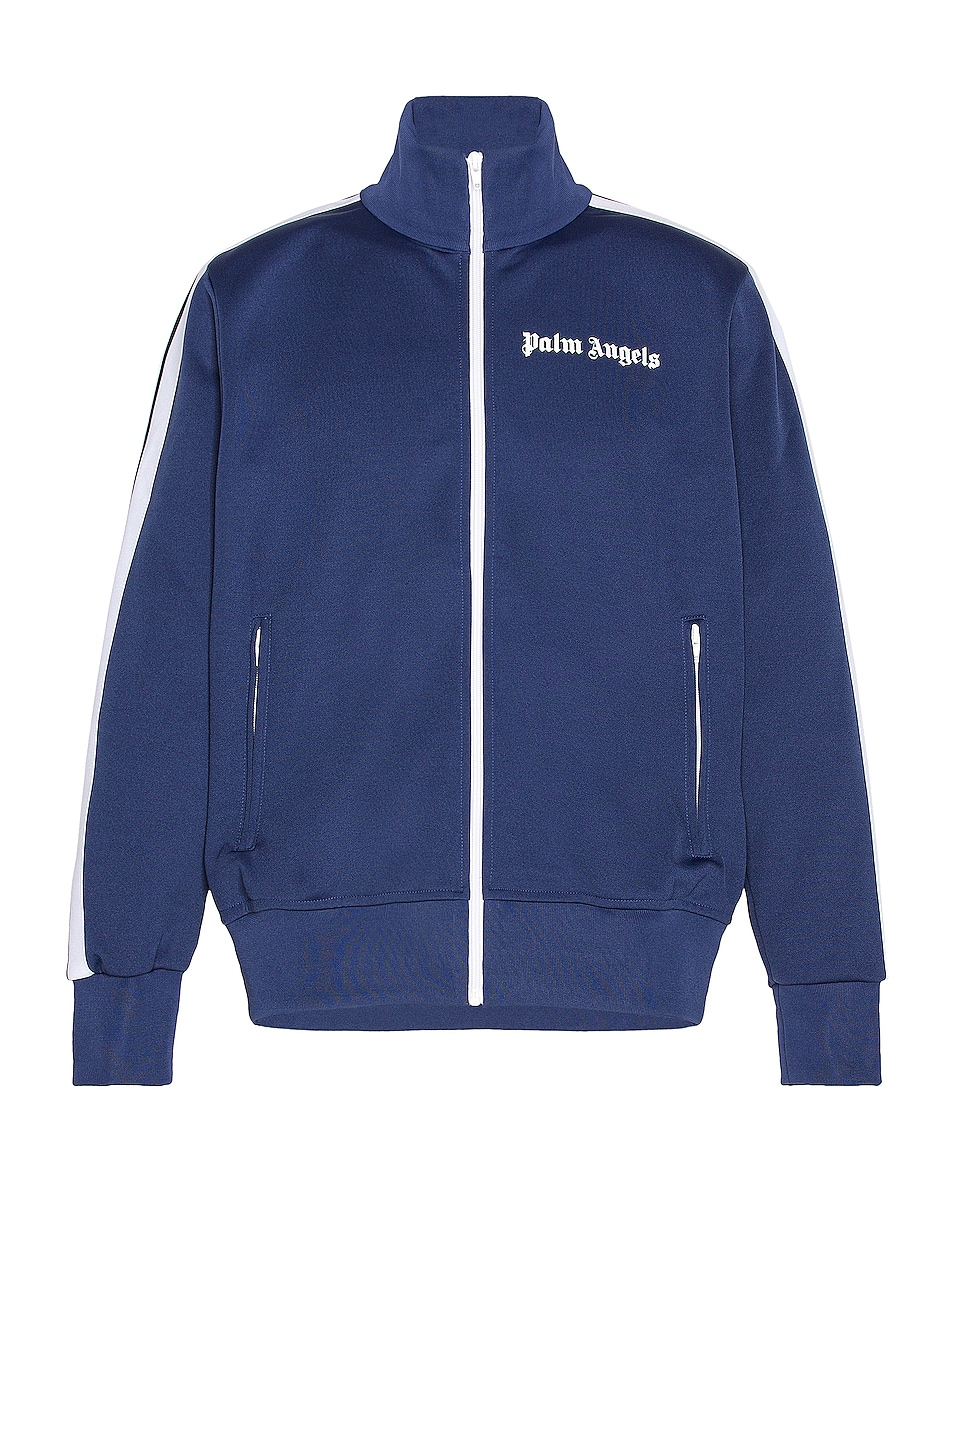 Image 1 of Palm Angels Track Jacket in